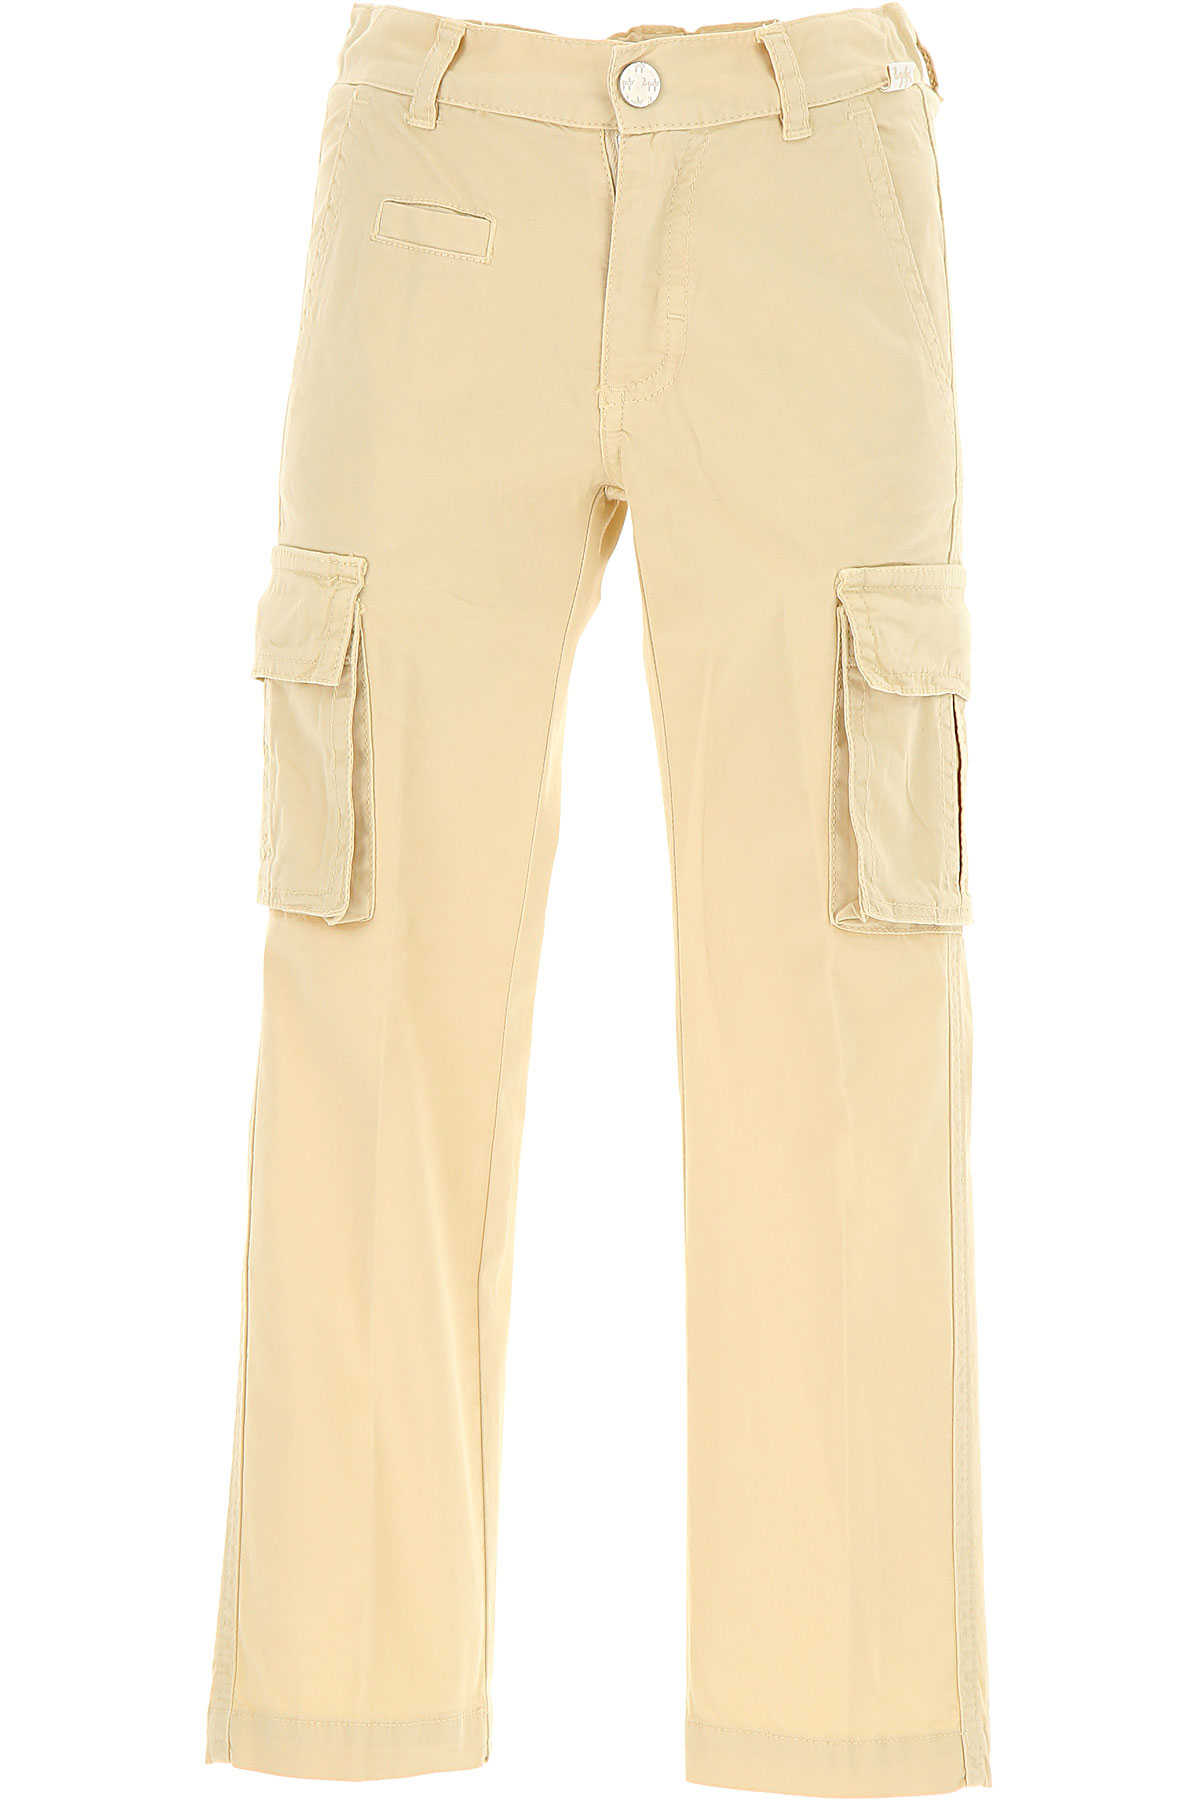 Il Gufo Kids Pants for Boys On Sale in Outlet Sand SE - GOOFASH